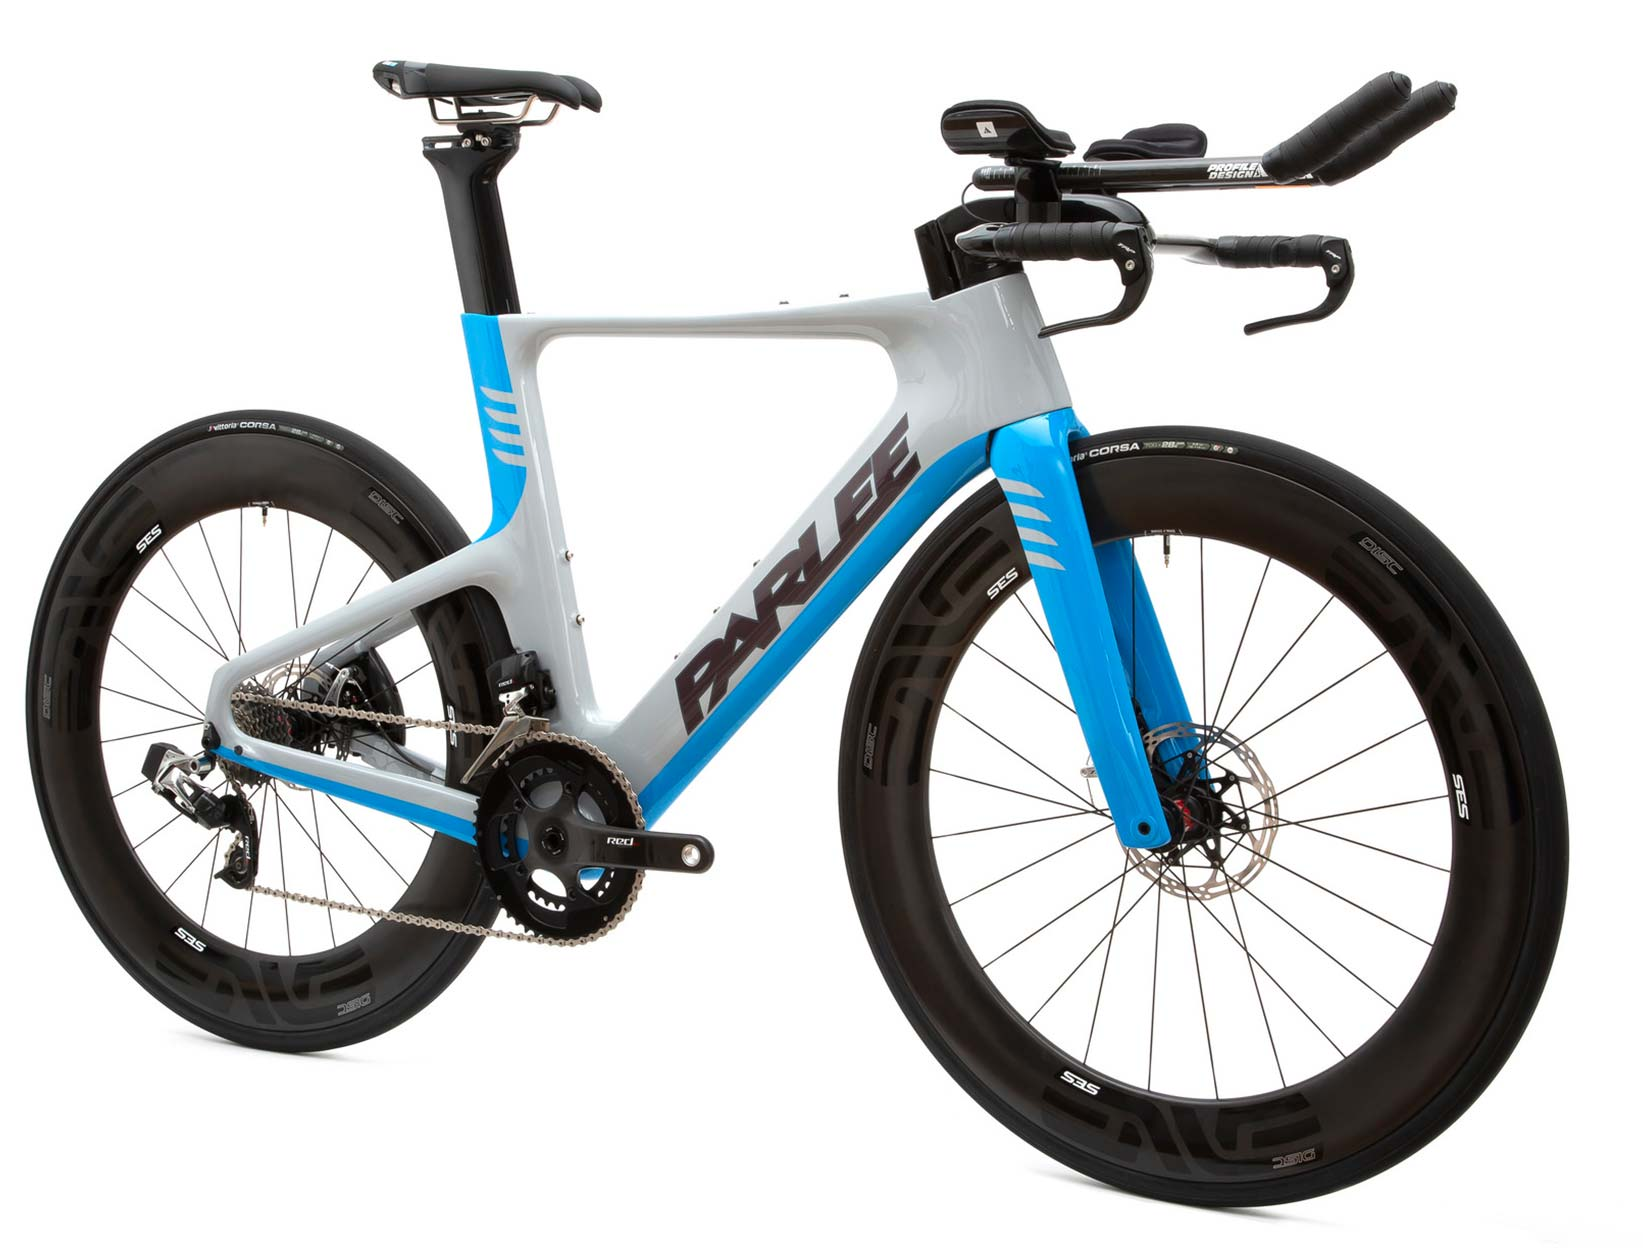 Parlee Cycles Ttir Disc All Info About Auto Repair Brake Mechanical Force Diagram The New Turns Braking Into A Positive